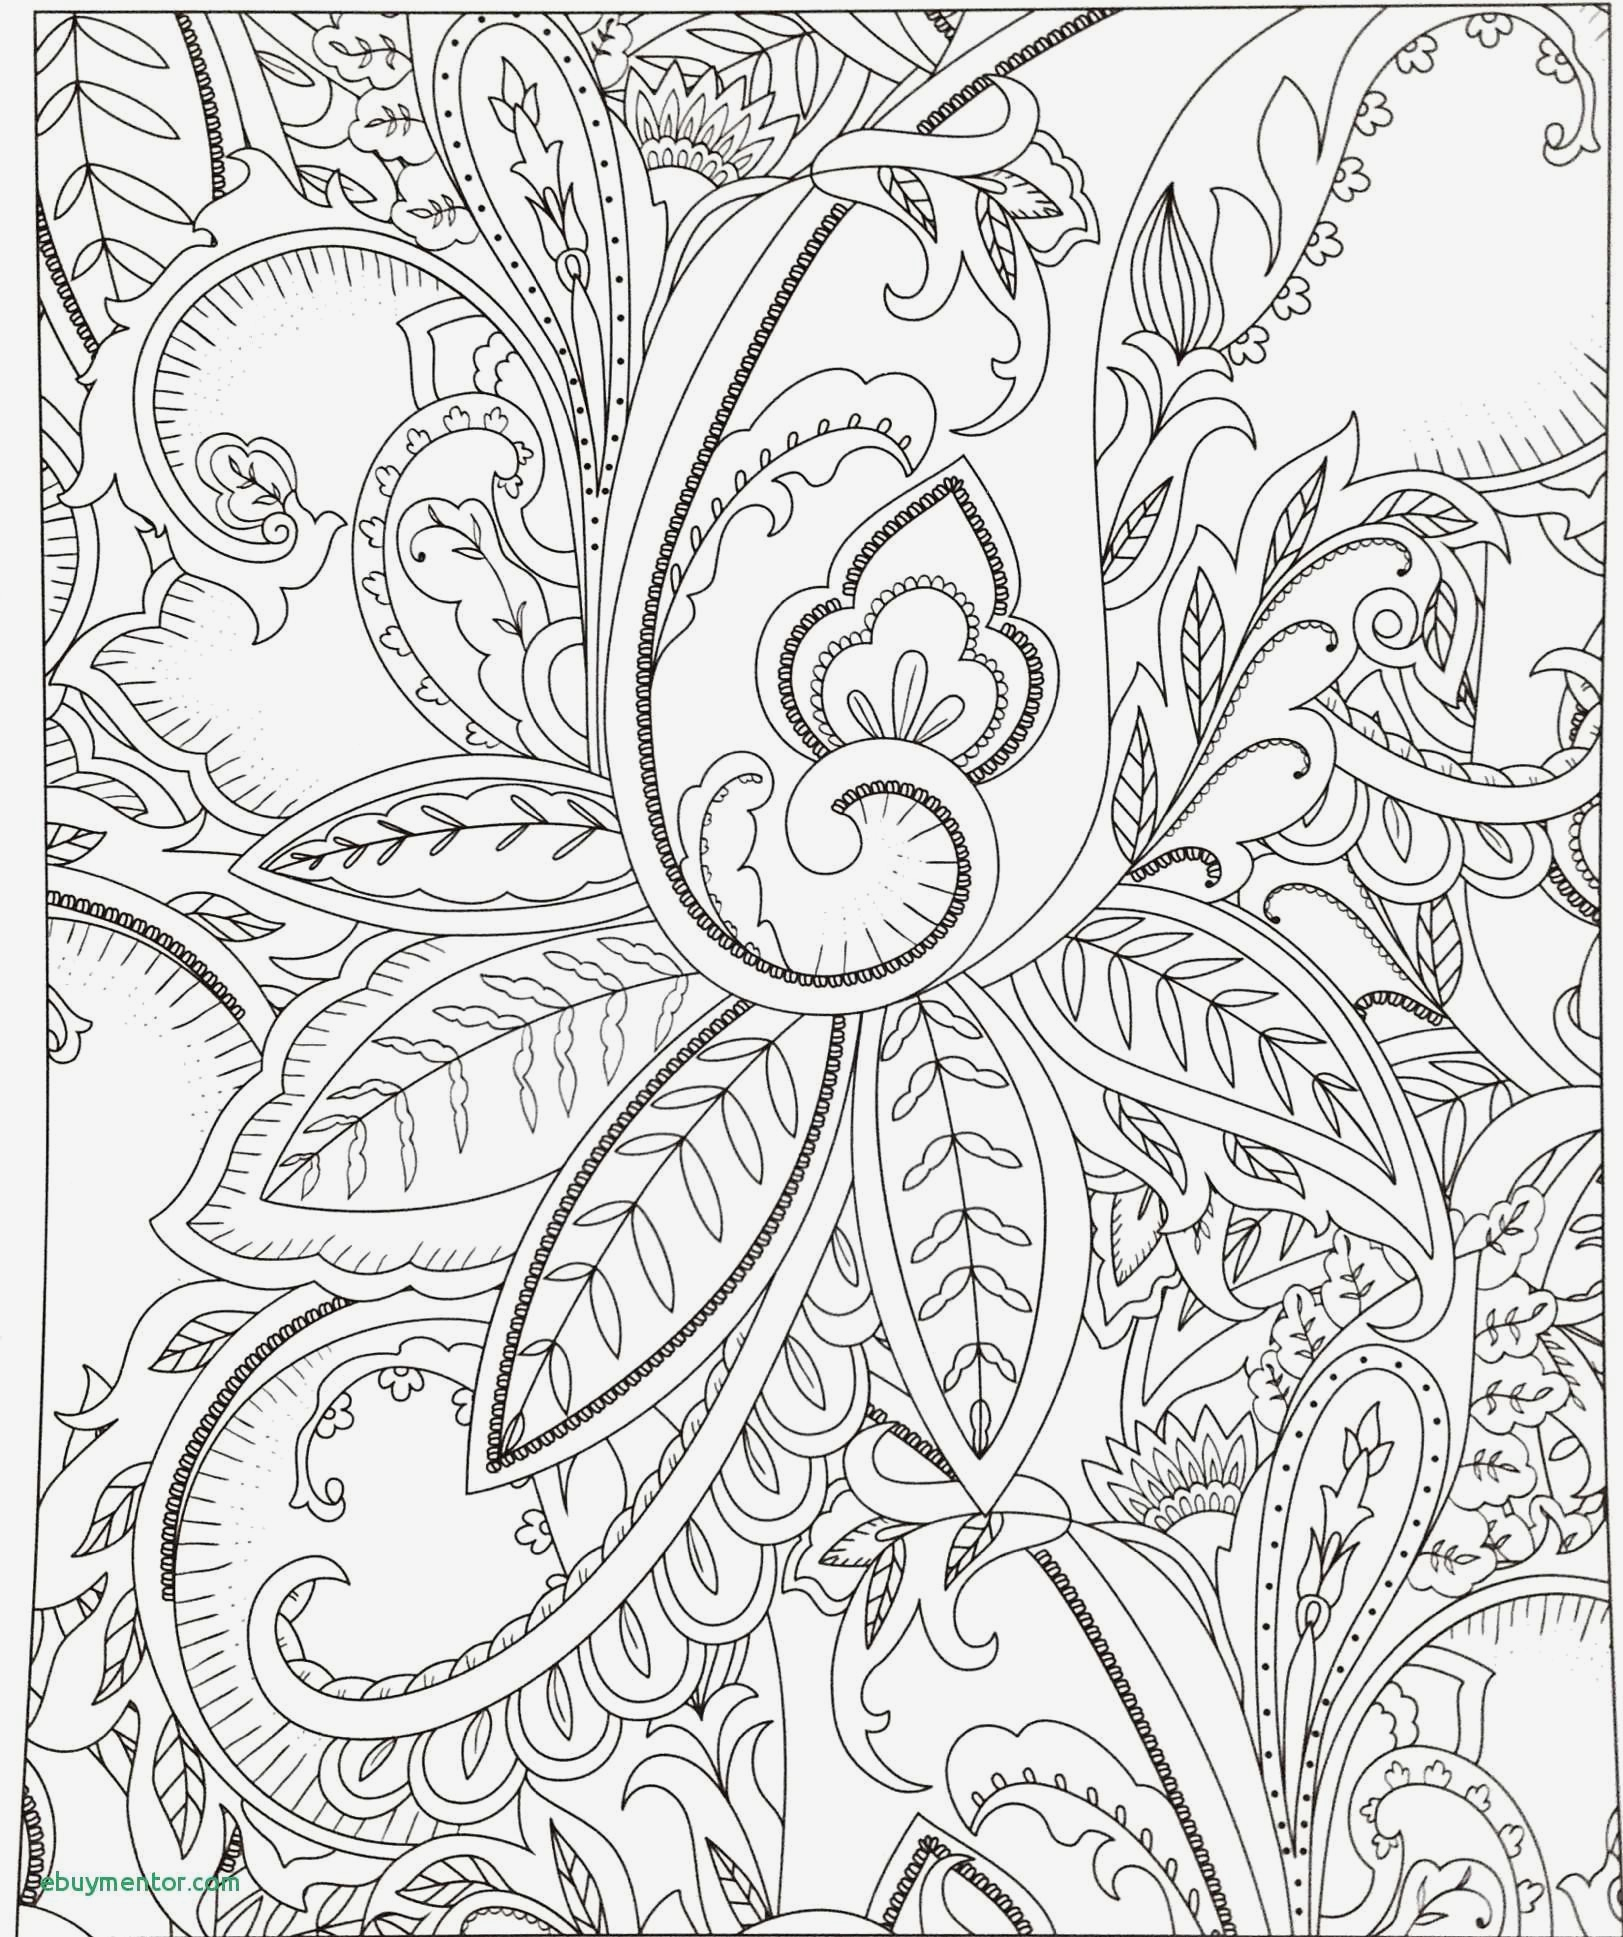 coloring pages mandala Download-Goat Coloring Pages Free Printable Coloring Pages Mandala Christmas Fresh Cool Coloring Printables 0d 14-r